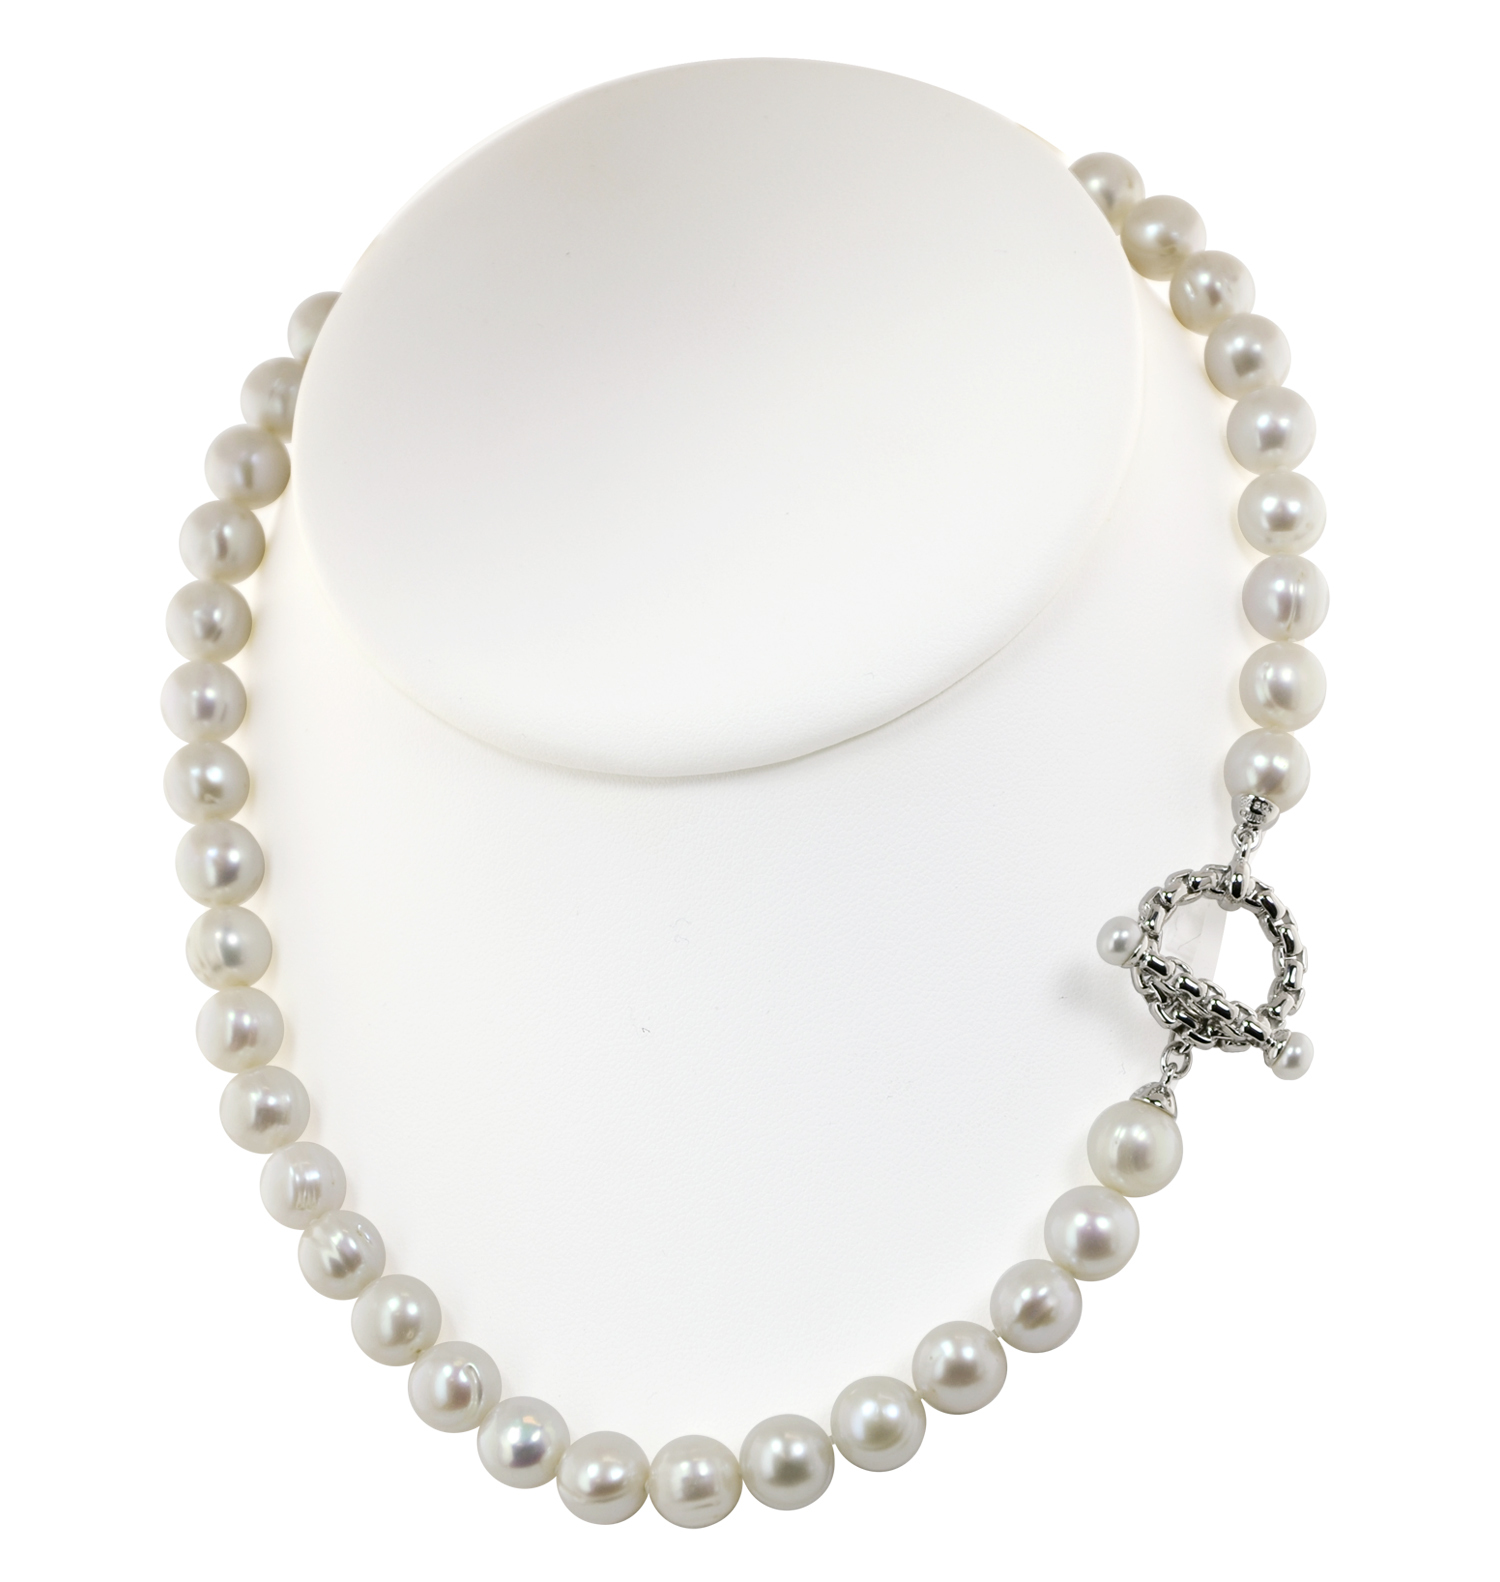 Sterling Silver 5-5.5mm Button and 9-10mm Ringed White Freshwater Cultured Pearl Toggle 18 Necklace